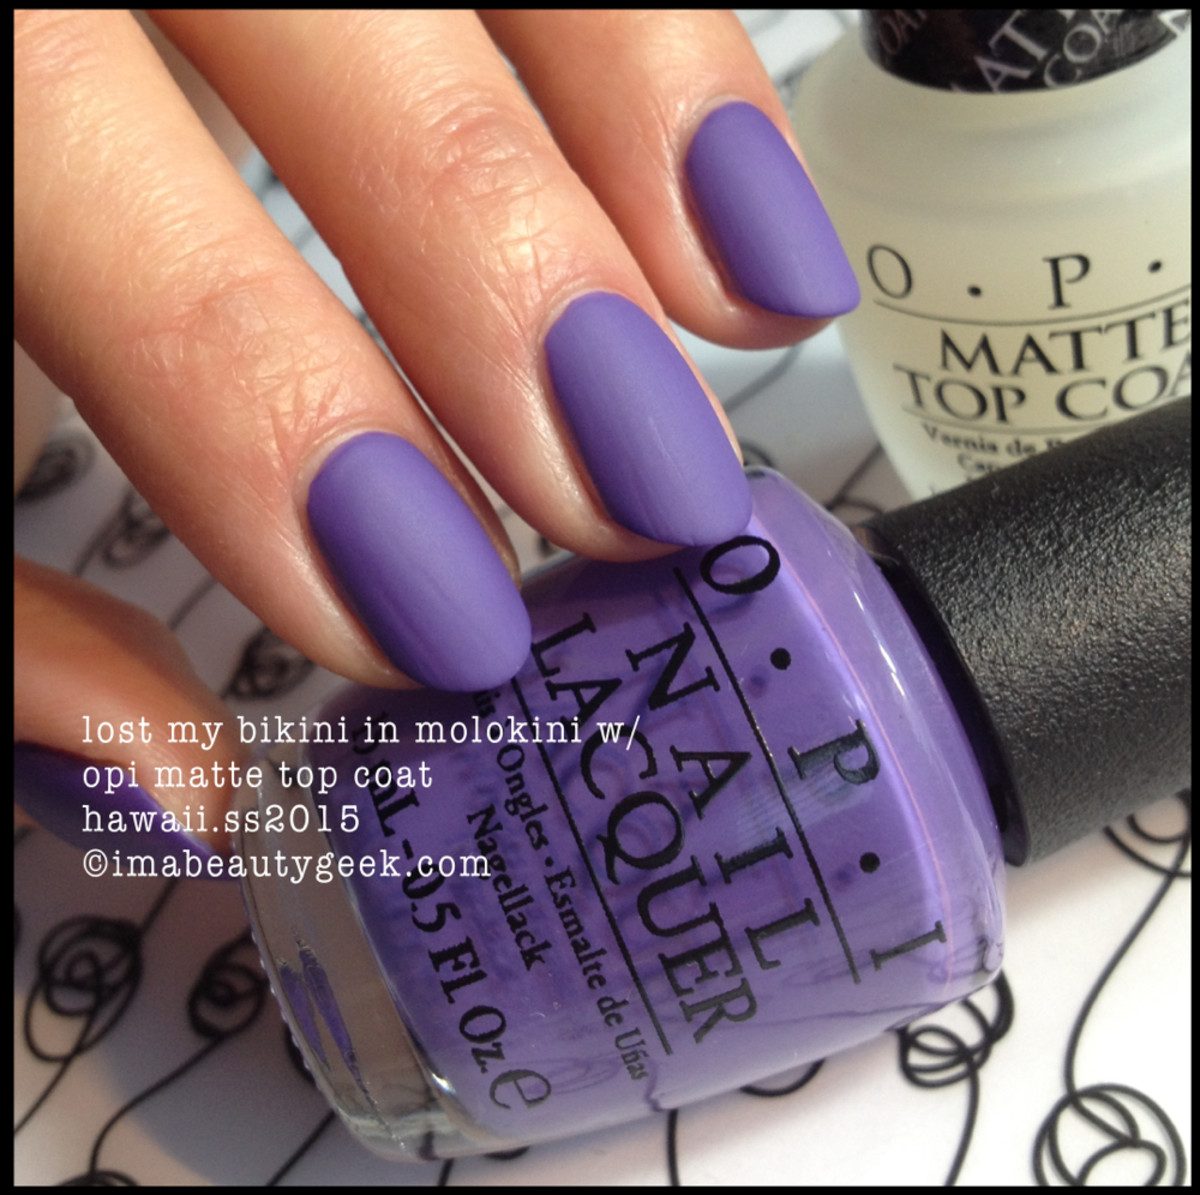 opi lost my bikini in molokini mattified